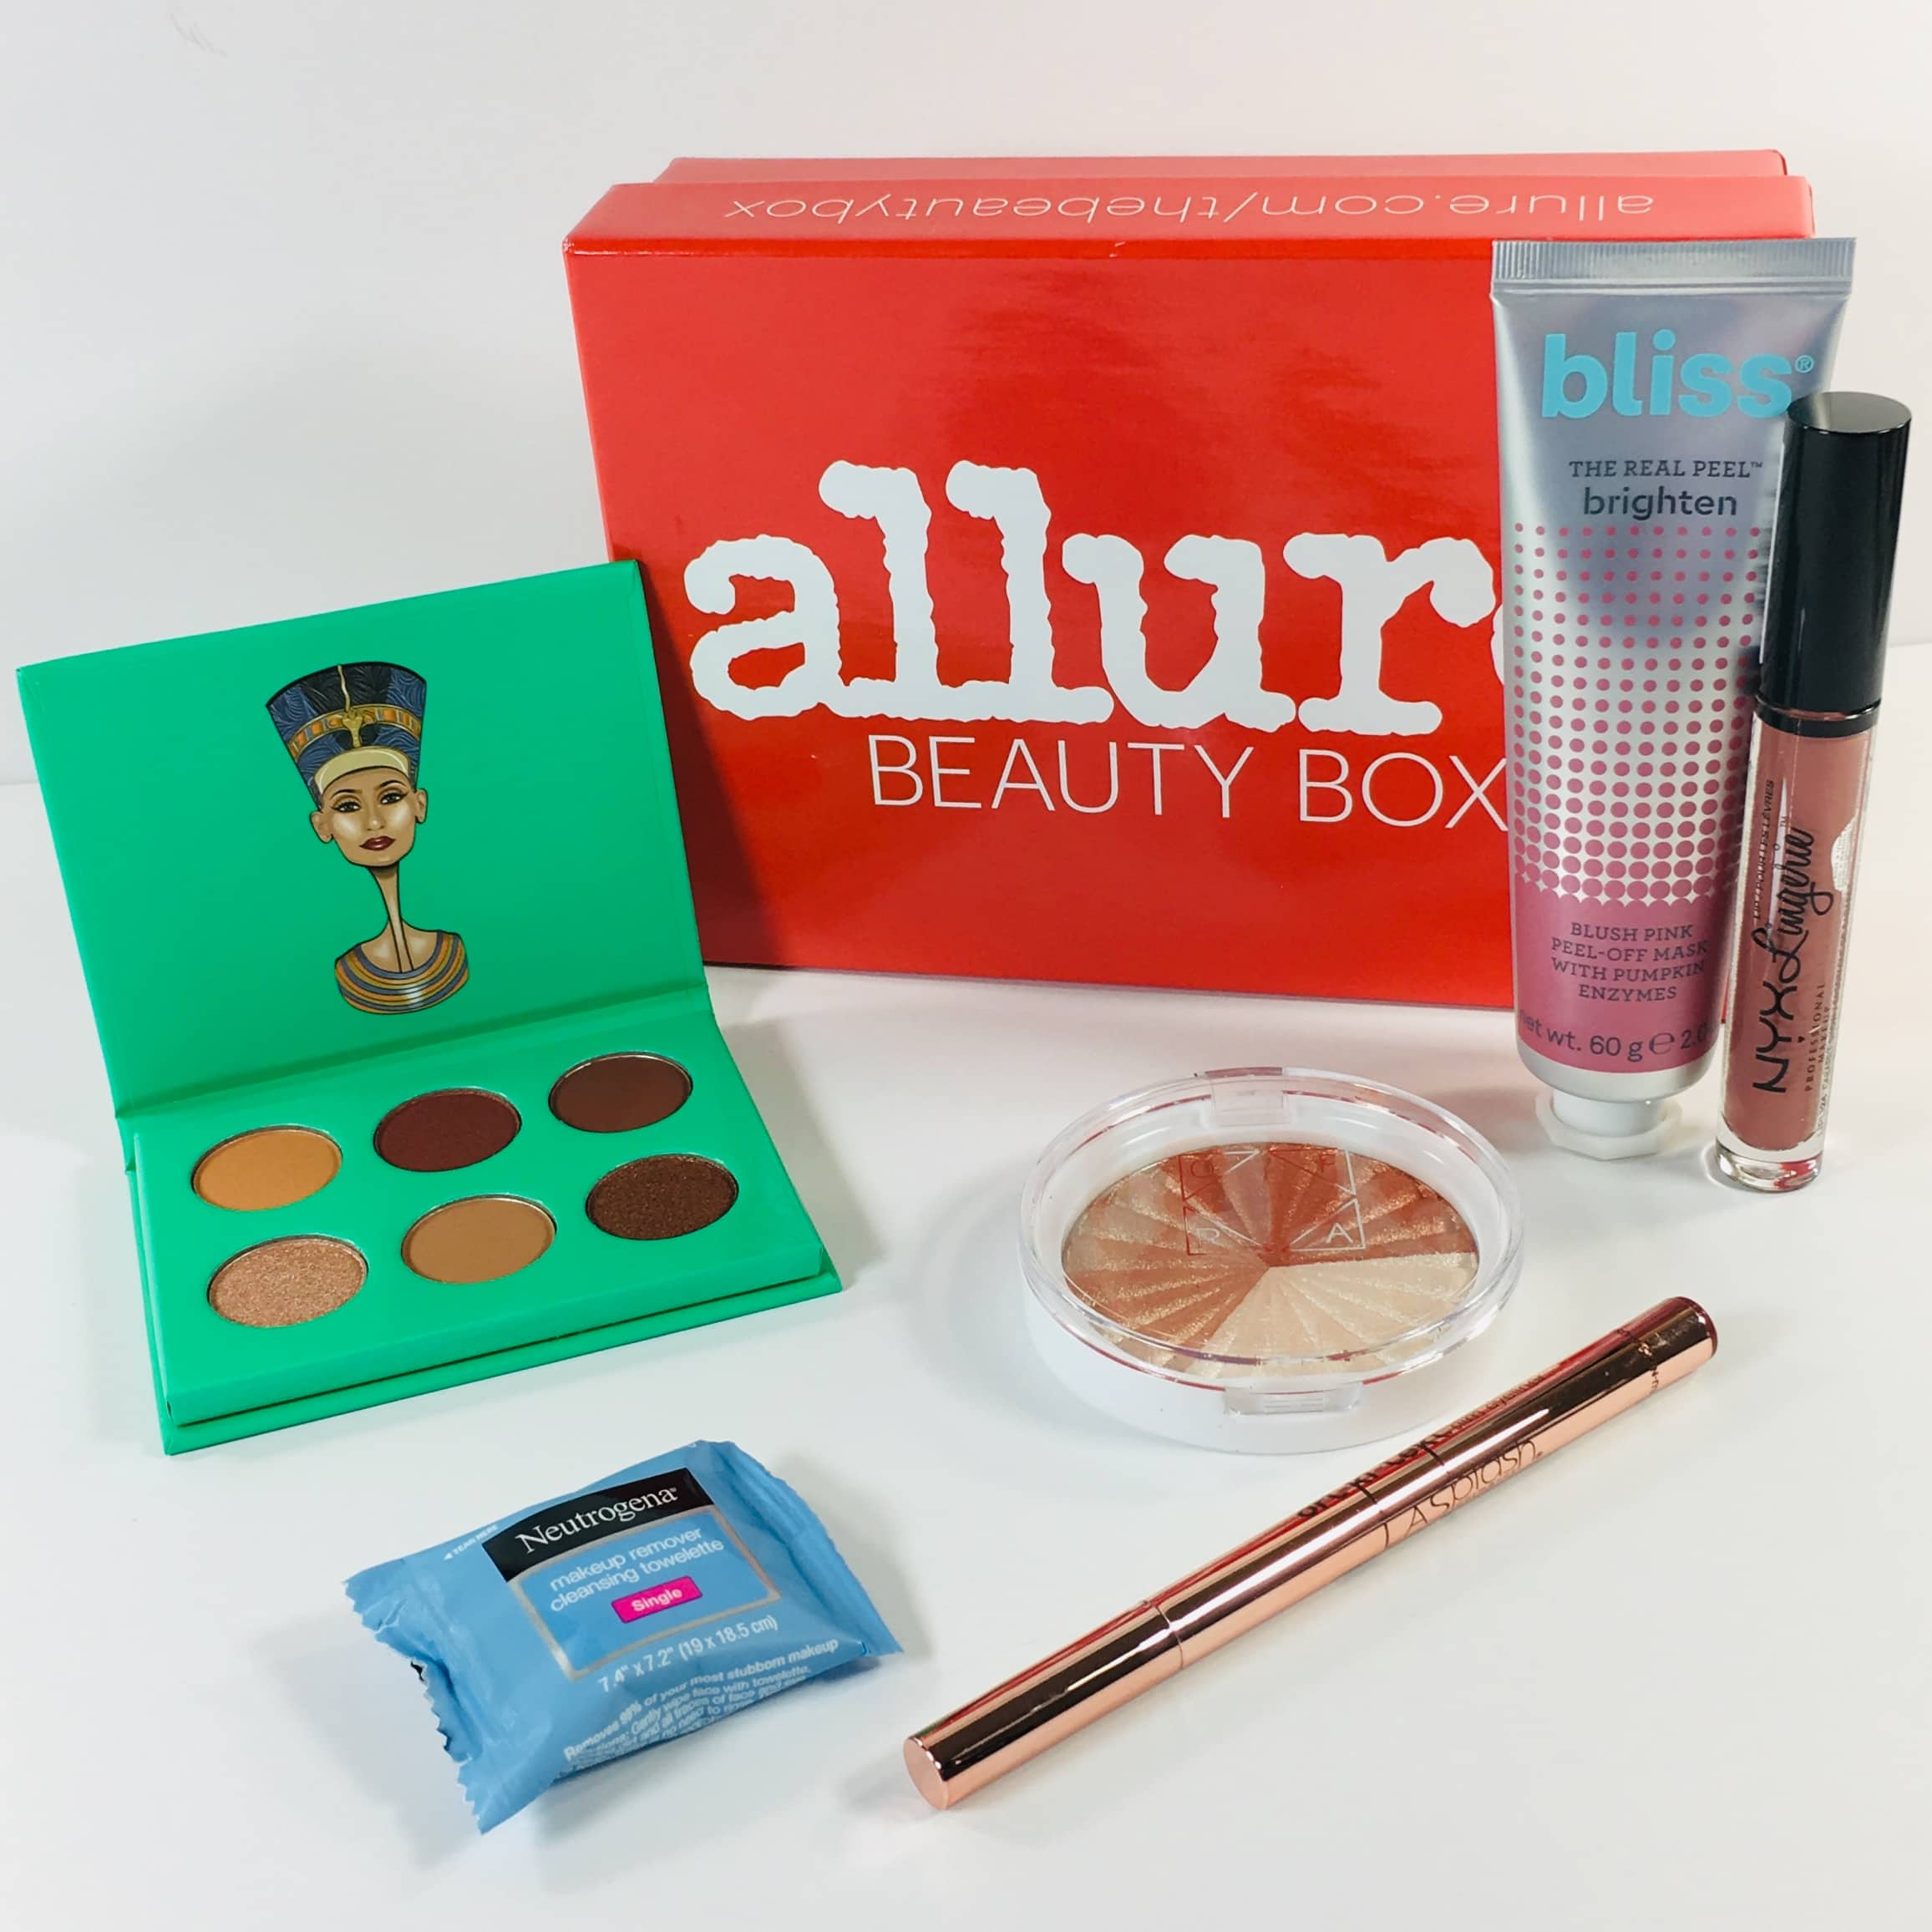 Allure Beauty Box December 2018 Subscription Box Review & Coupon